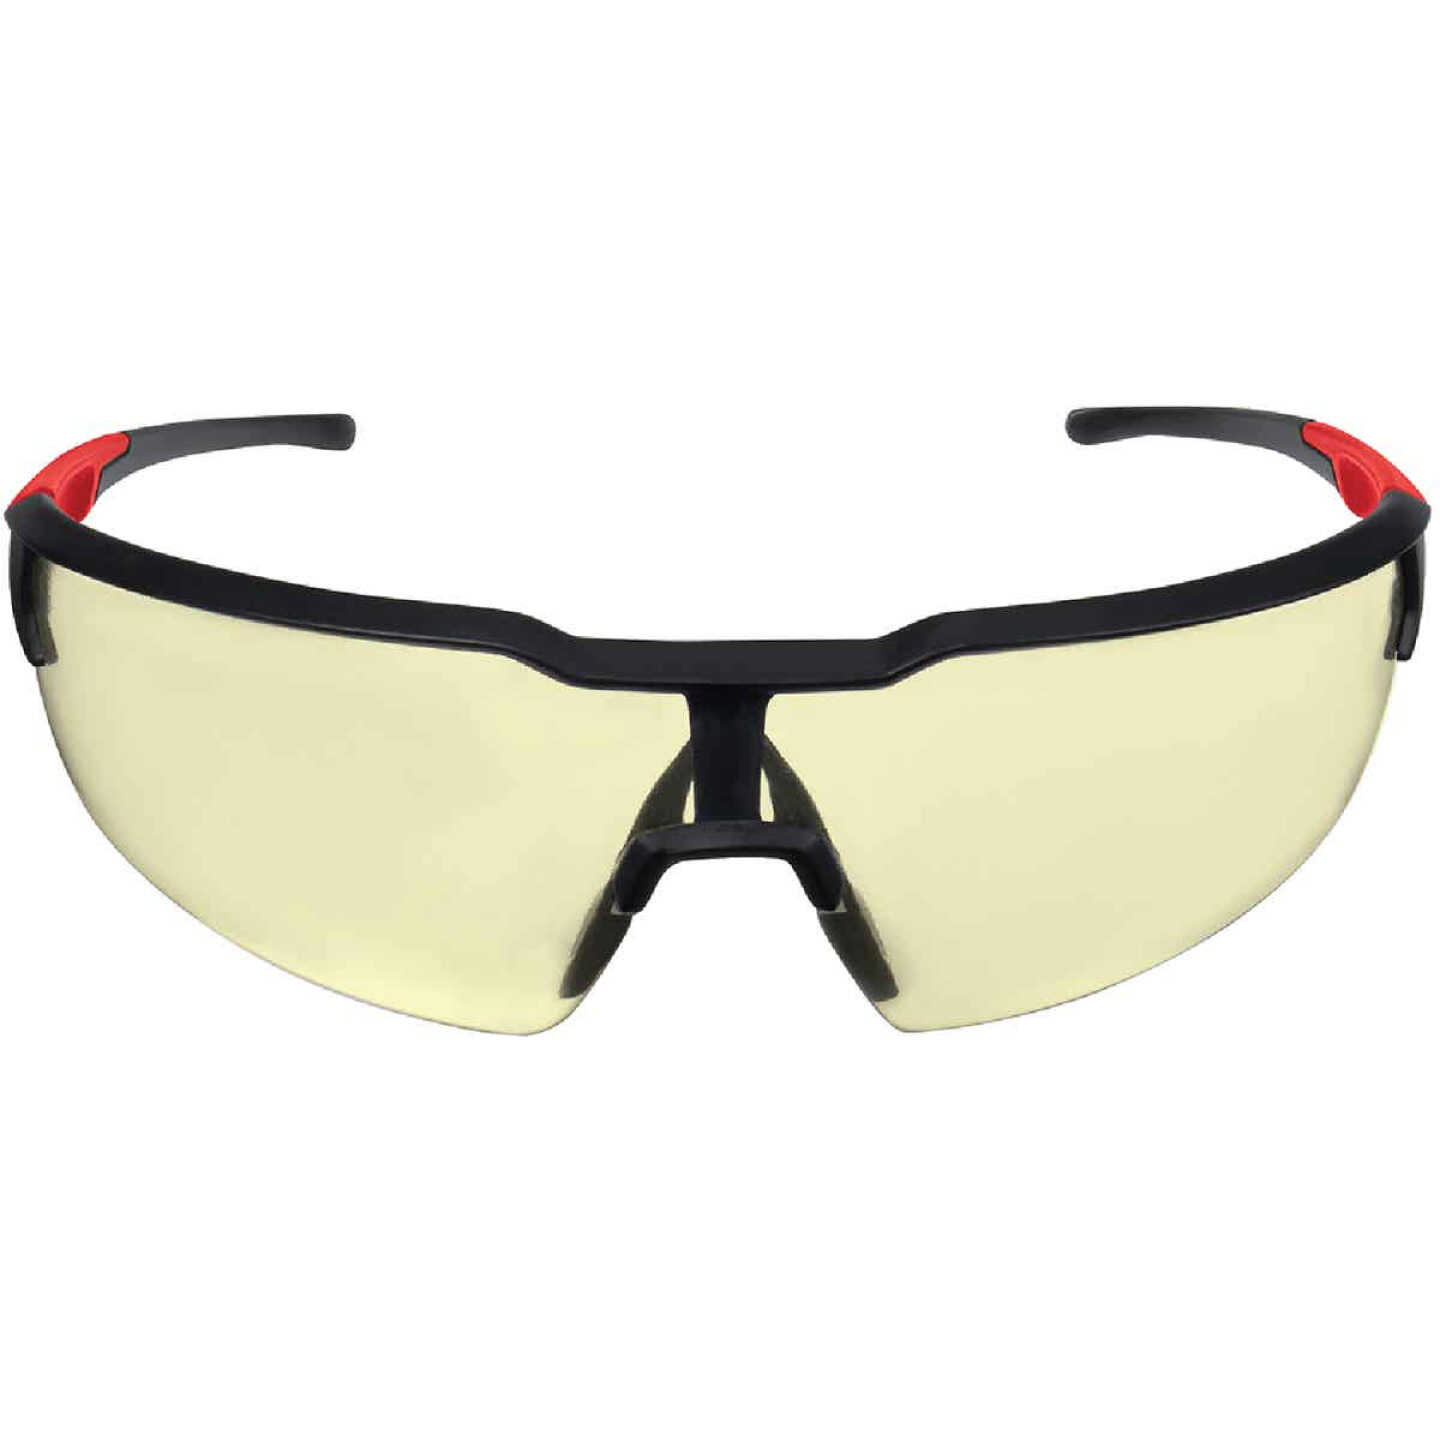 Milwaukee Red & Black Frame Safety Glasses with Yellow Anti-Scratch Lenses Image 3